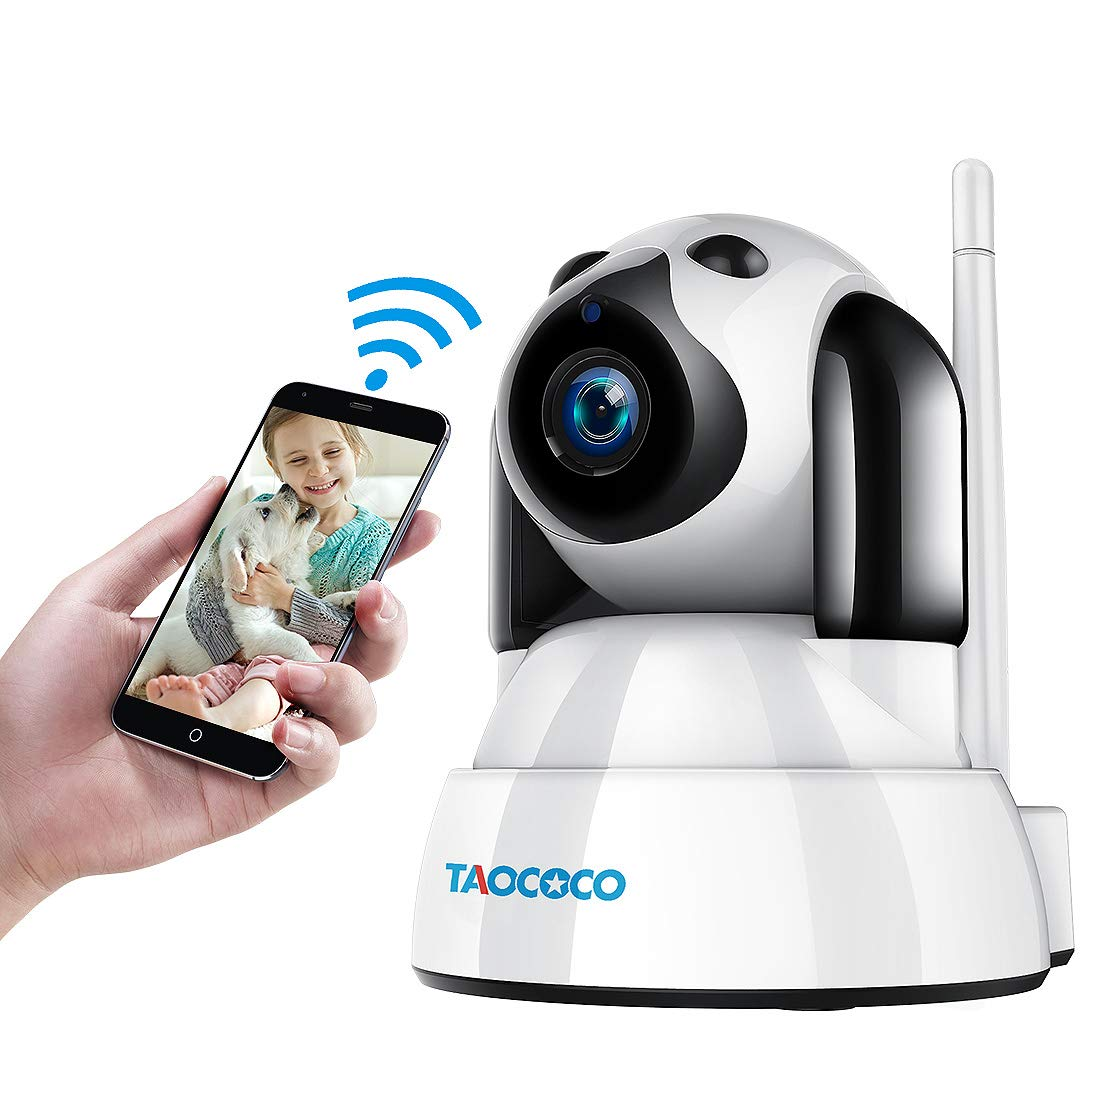 TAOCOCO Dog Pet Camera, 1080P FHD Cat WiFi IP Camera, Wireless Security Camera, Home Baby Monitor Nanny Cam with Smart Pan/Tilt/Zoom, Motion Detection, Two Way Talking, Infrared Night Vision by TAOCOCO